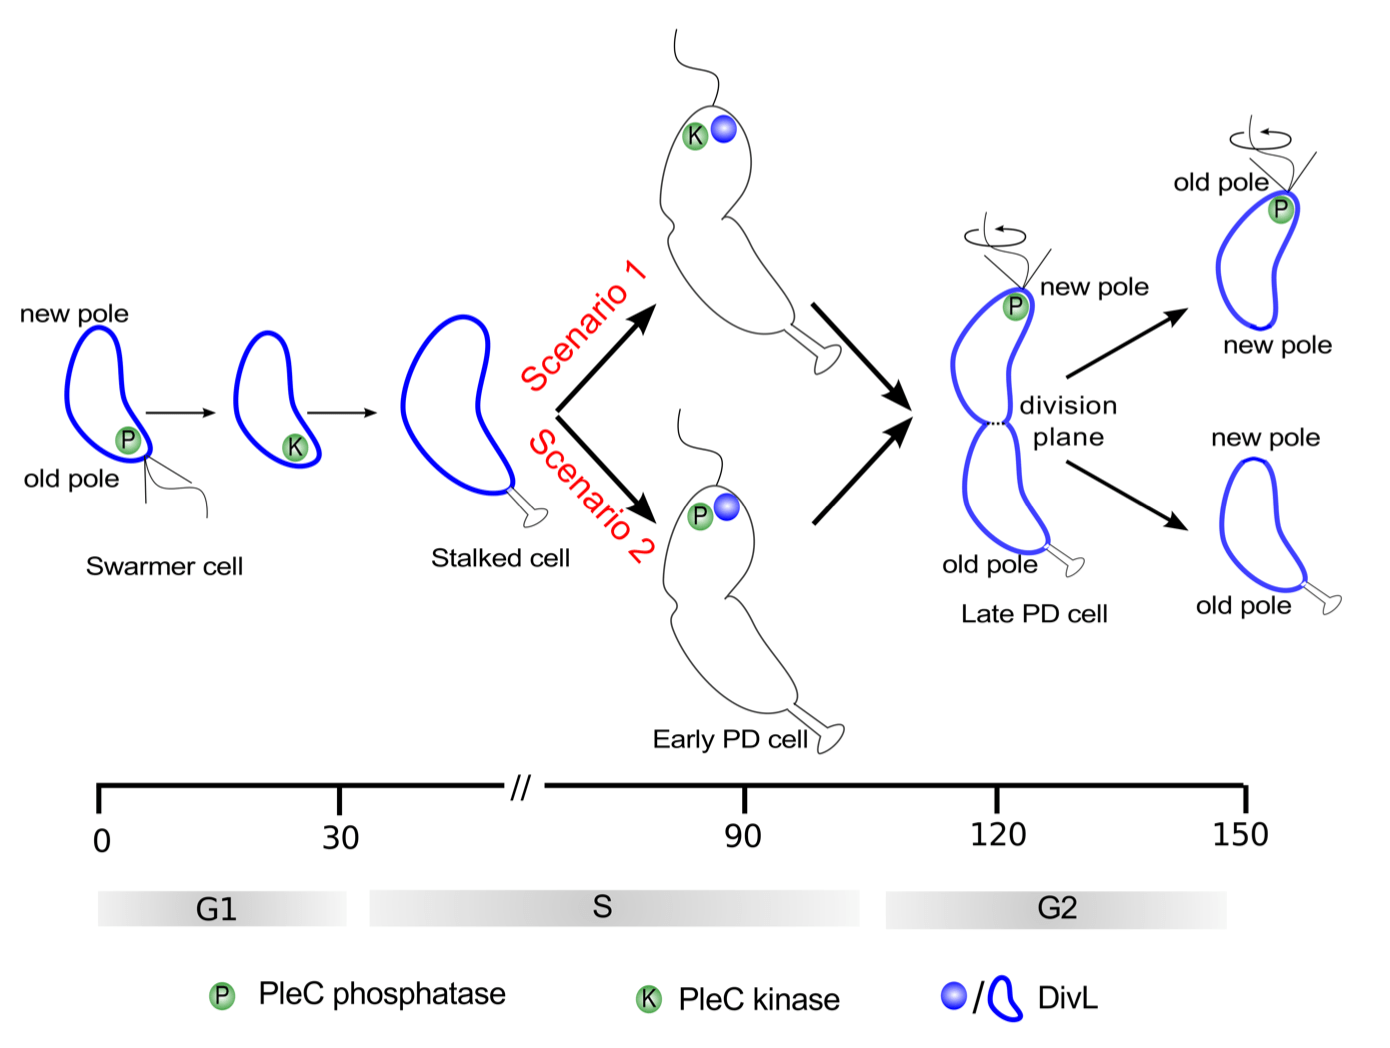 Spatiotemporal Model of the Asymmetric Division Cycle of